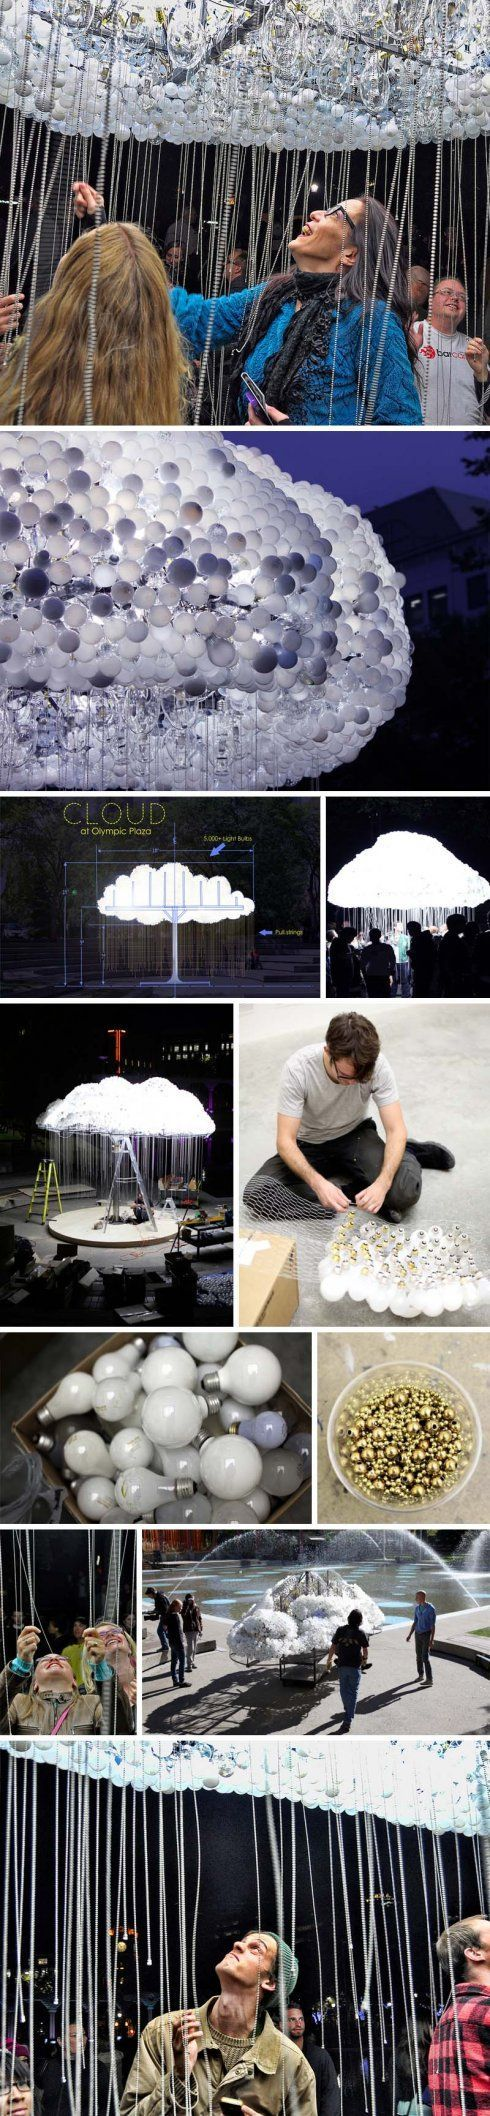 Made with more than 5,000 reappropriated domestic light bulbs (only one in every six bulbs actually needs to glow), in addition to compact fluorescent bulbs and chain pull strings, Cloud invites viewers to wander through a rain of pull strings switching lights on and off. When audiences activate the Cloud's inner sphere of light bulbs it creates the illusion of lightning on the cloud's surface.